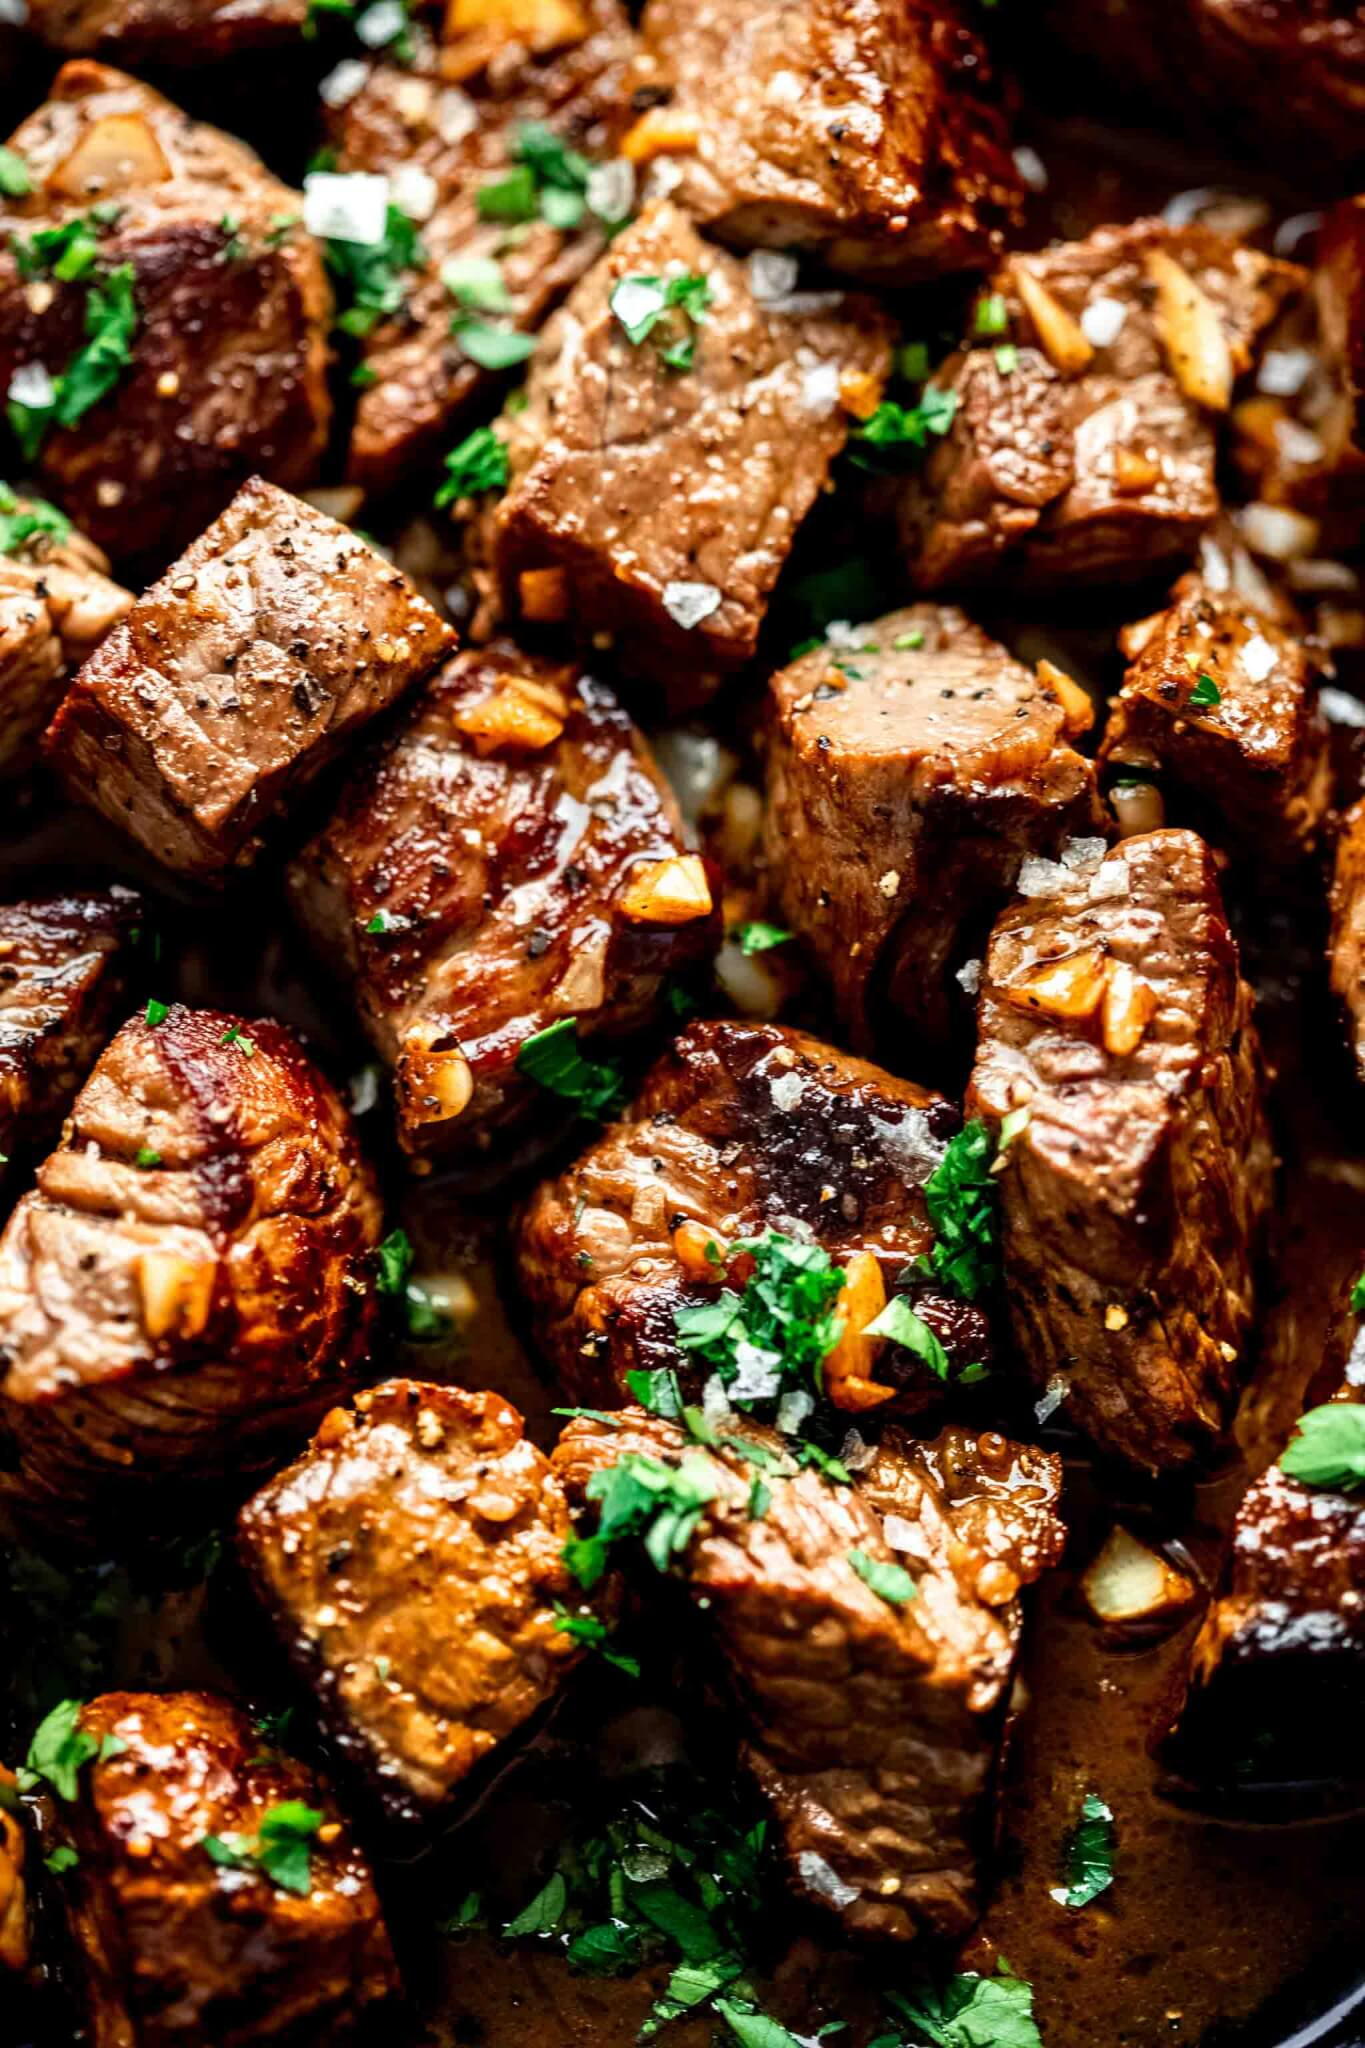 Overhead closeup of steak bites in skillet topped with garlic bits and parsley.